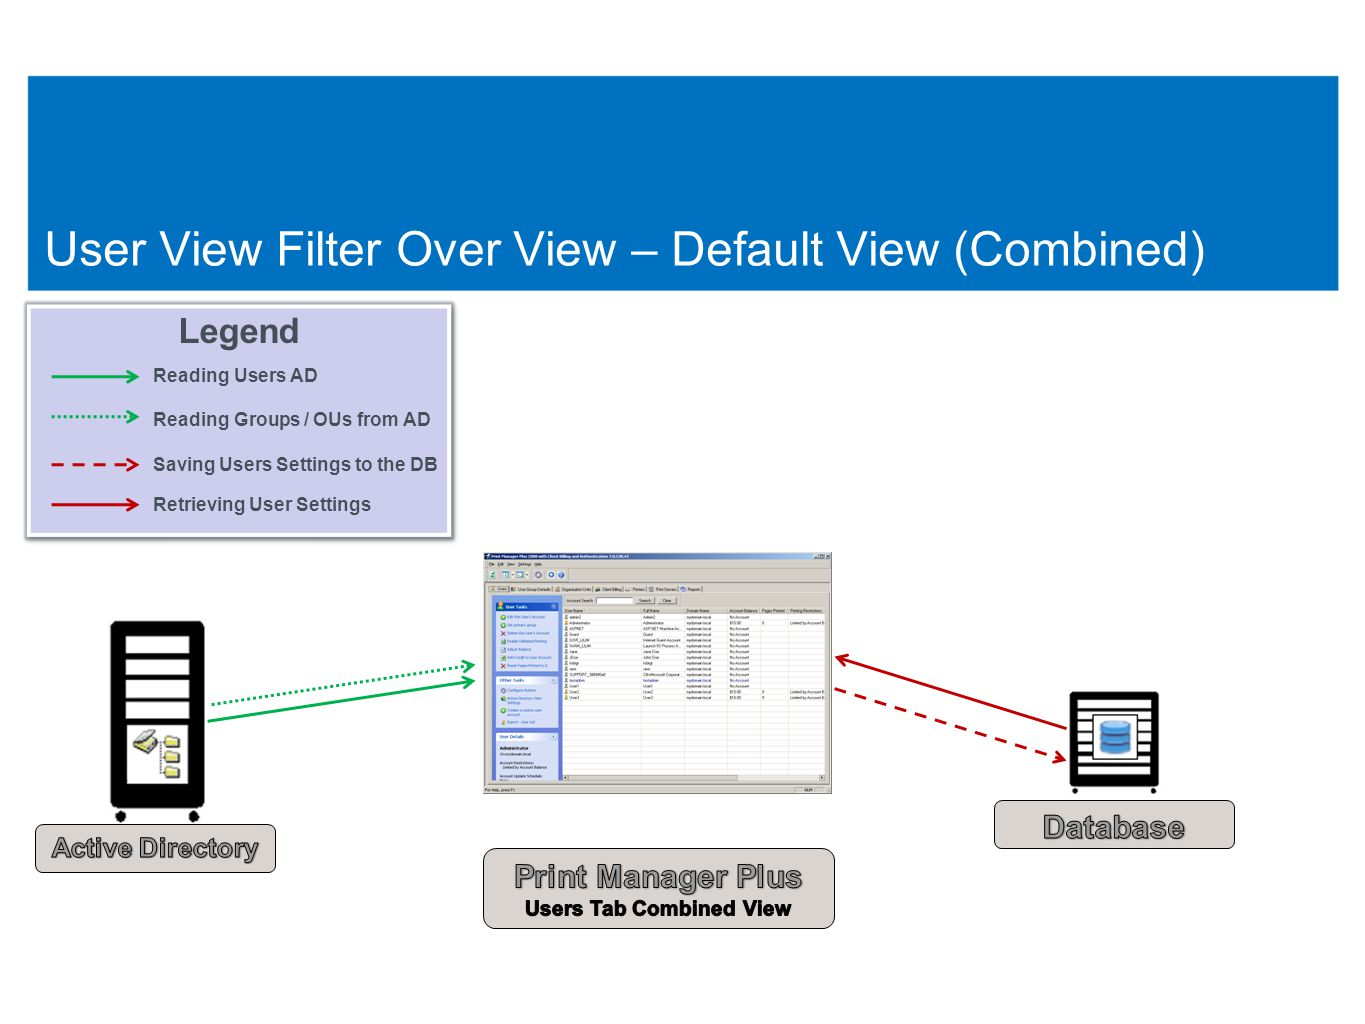 55 User View Filter Over View – Default View (Combined) 55 Legend Reading Users AD Reading Groups / OUs from AD Saving Users Settings to the DB Retrieving User Settings Legend Reading Users AD Reading Groups / OUs from AD Saving Users Settings to the DB Retrieving User Settings